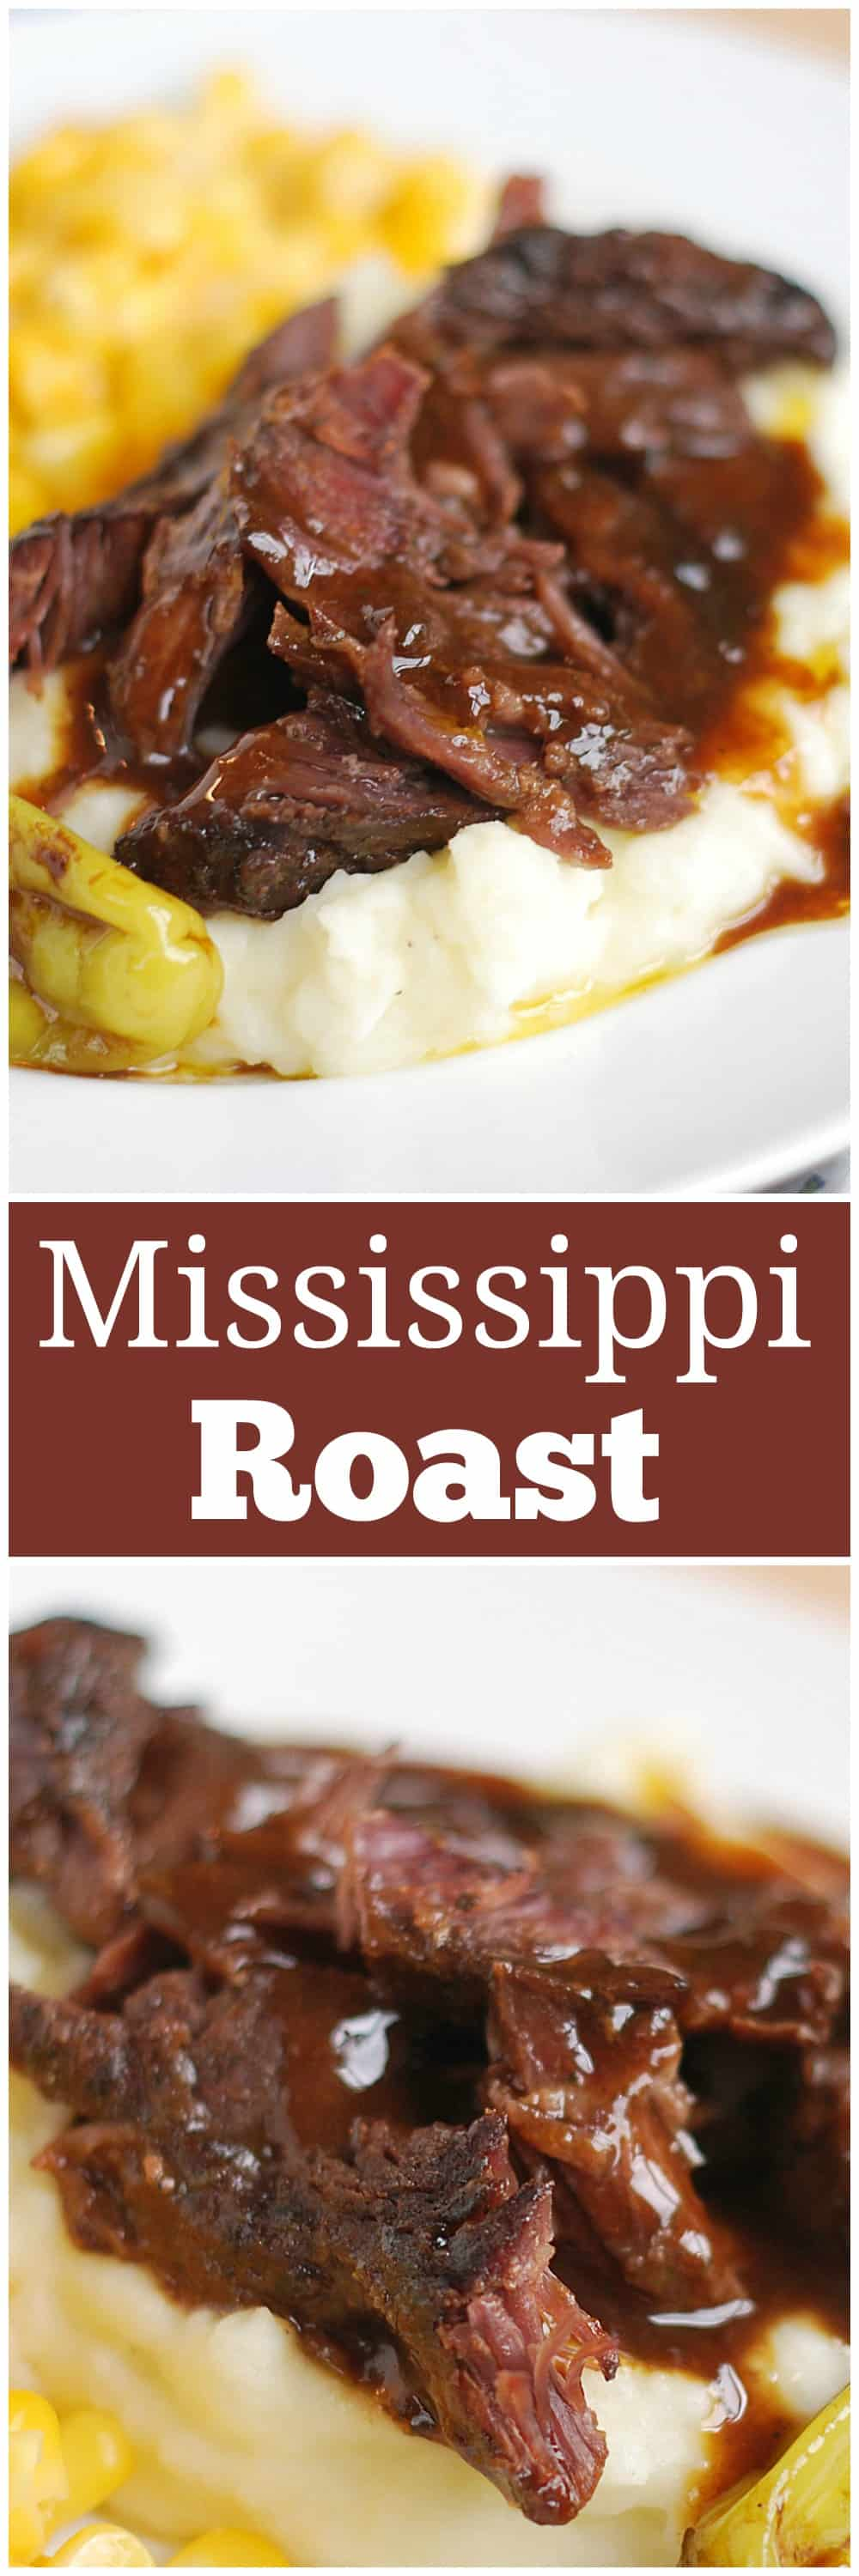 Slow Cooker Mississippi Roast - only easy 5 ingredients for this delicious, kid-friendly, crockpot meal! My kids love when I serve this over mashed potatoes.